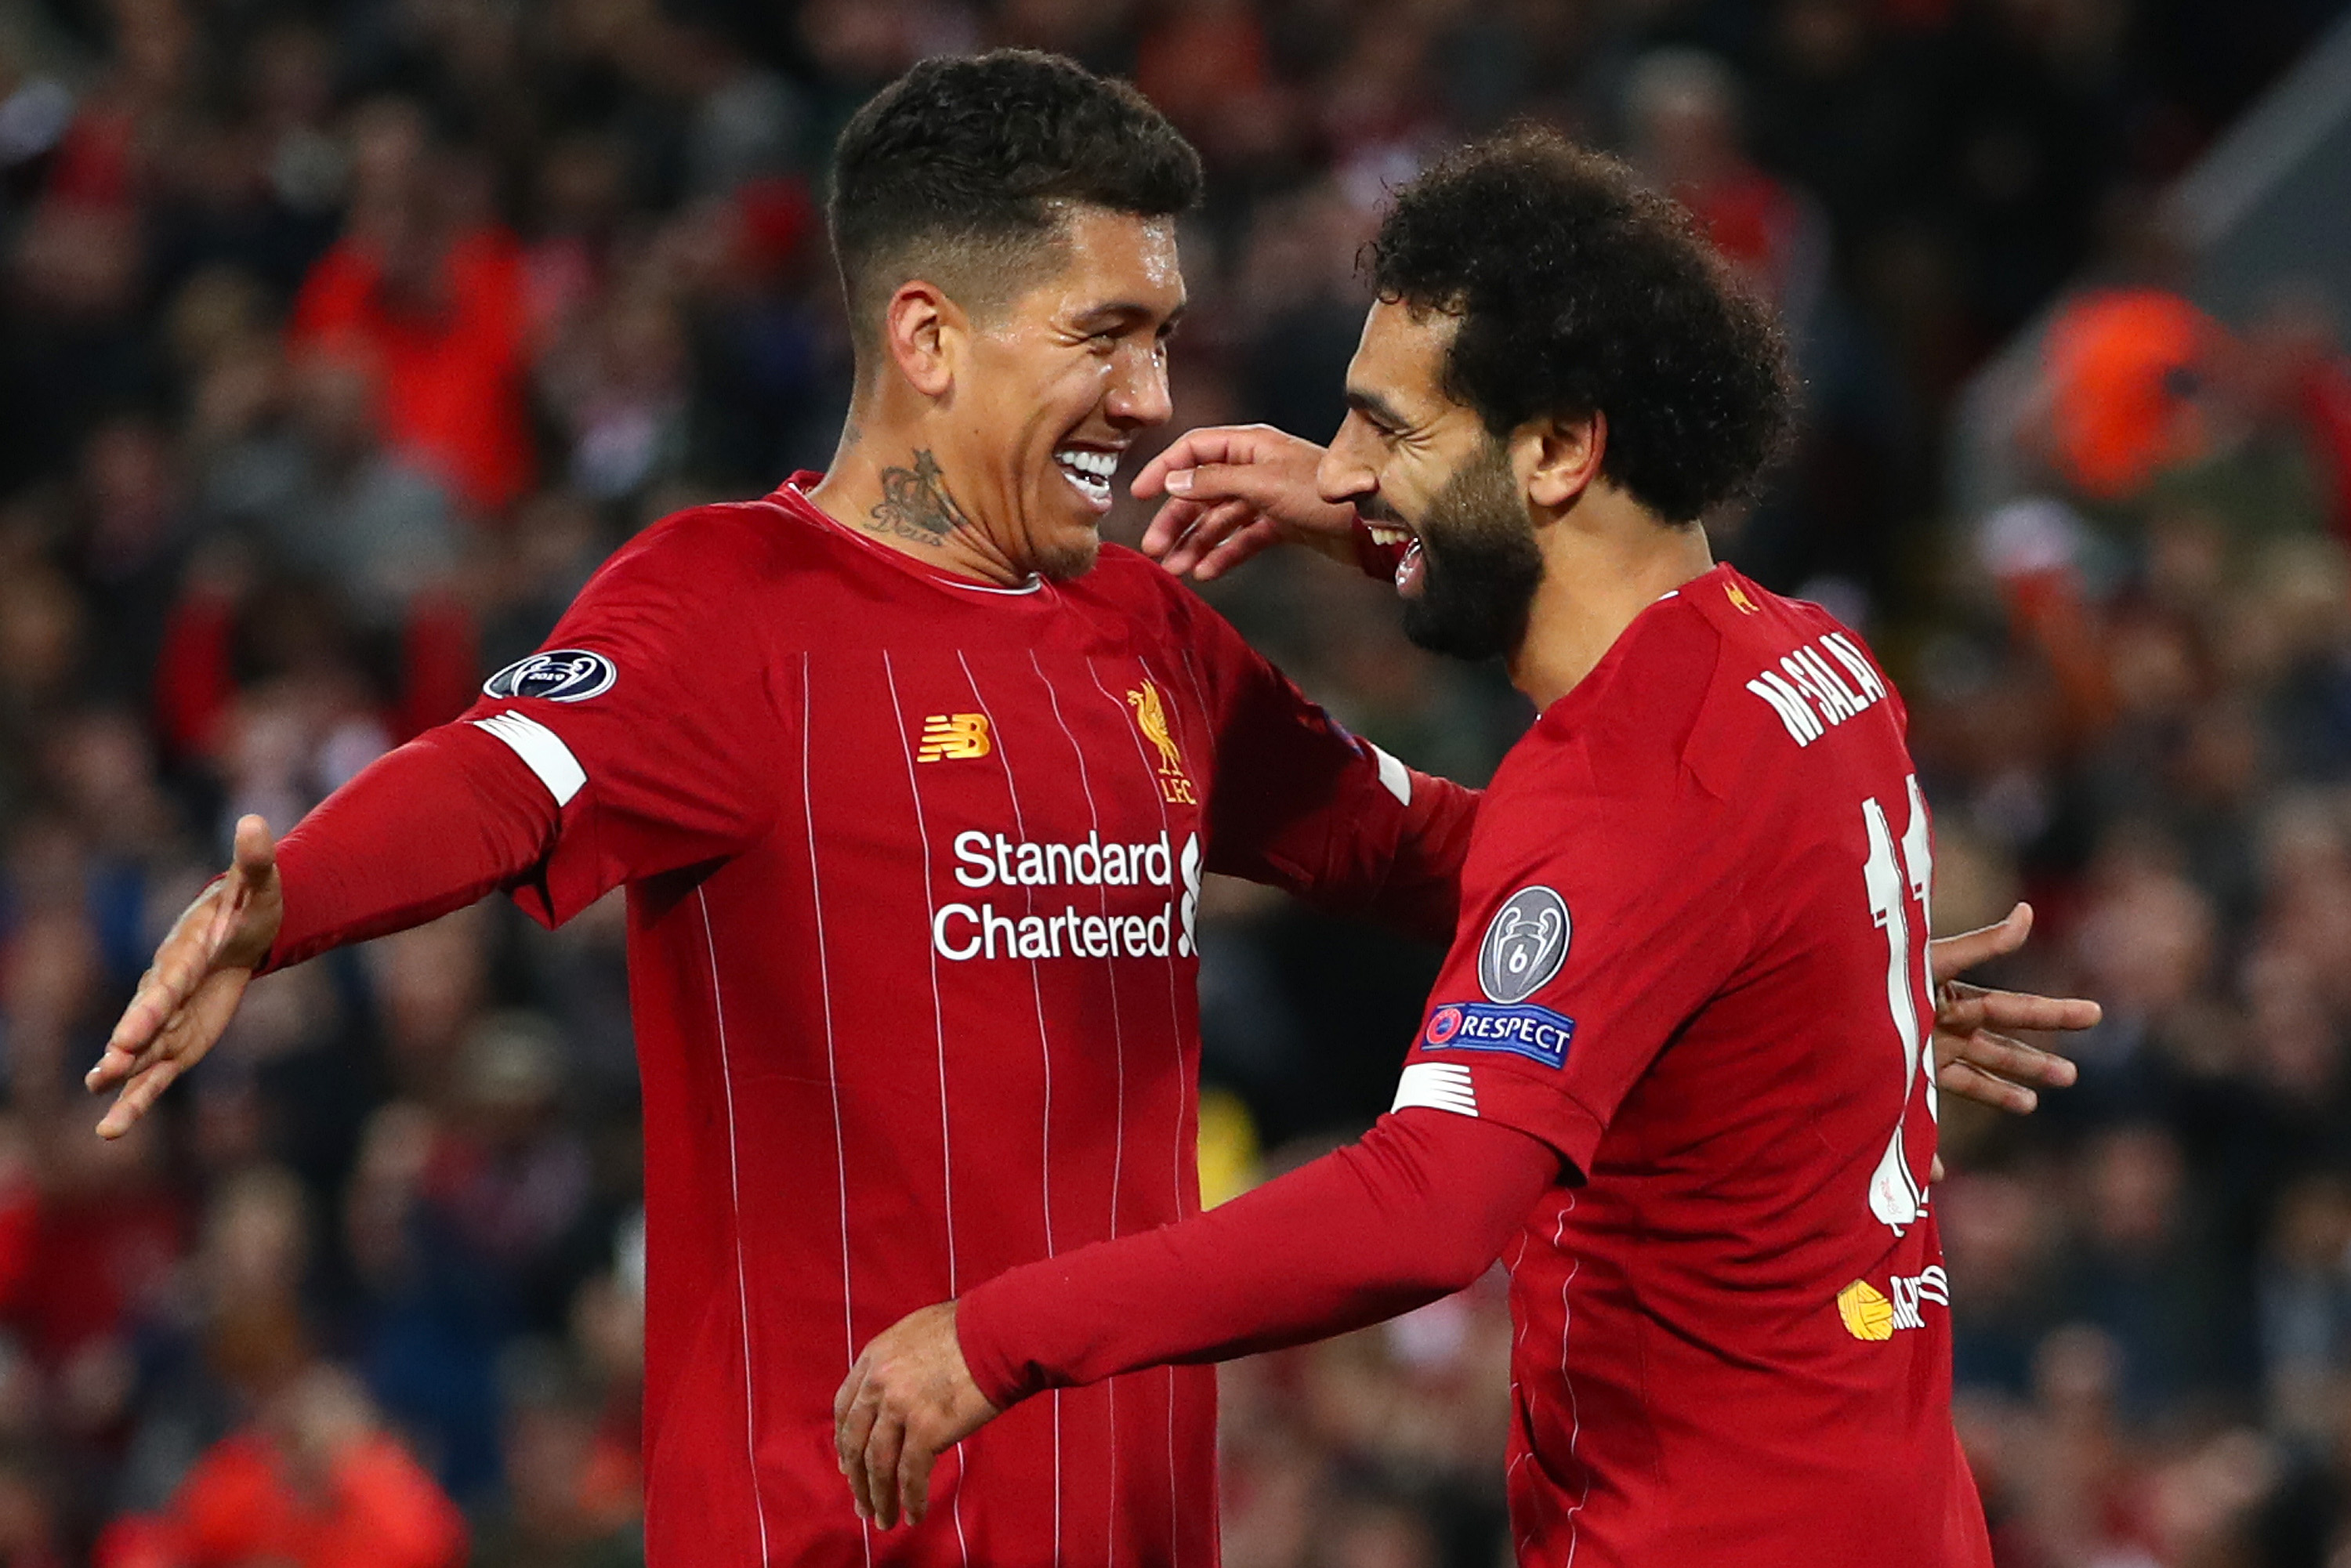 Mo Salah scored the vital winning goal for Liverpool.